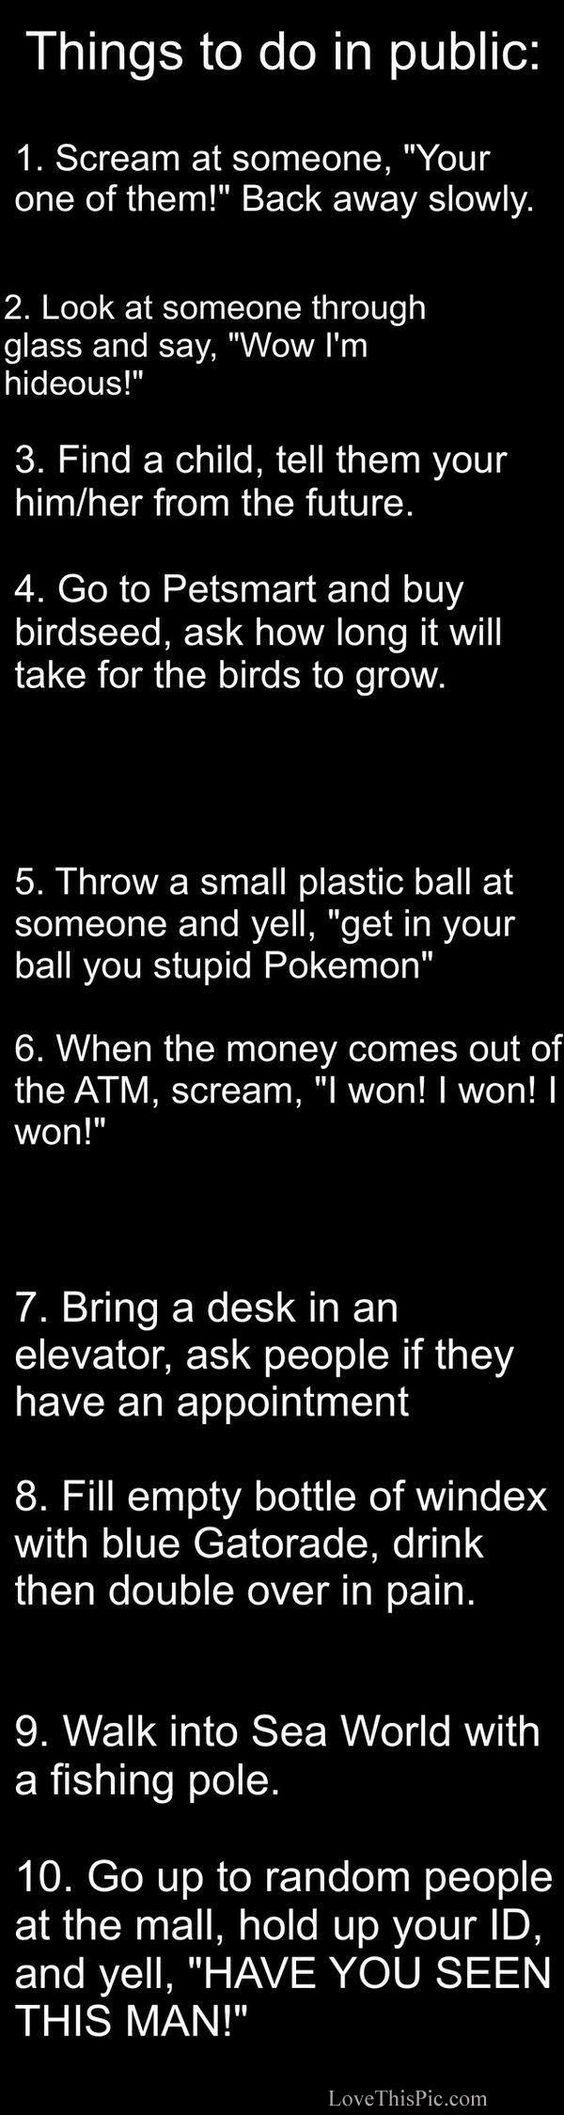 Best Funny Bucket List Ideas On Pinterest Bucketlist Ideas - Hilarious things clients said turned clever posters